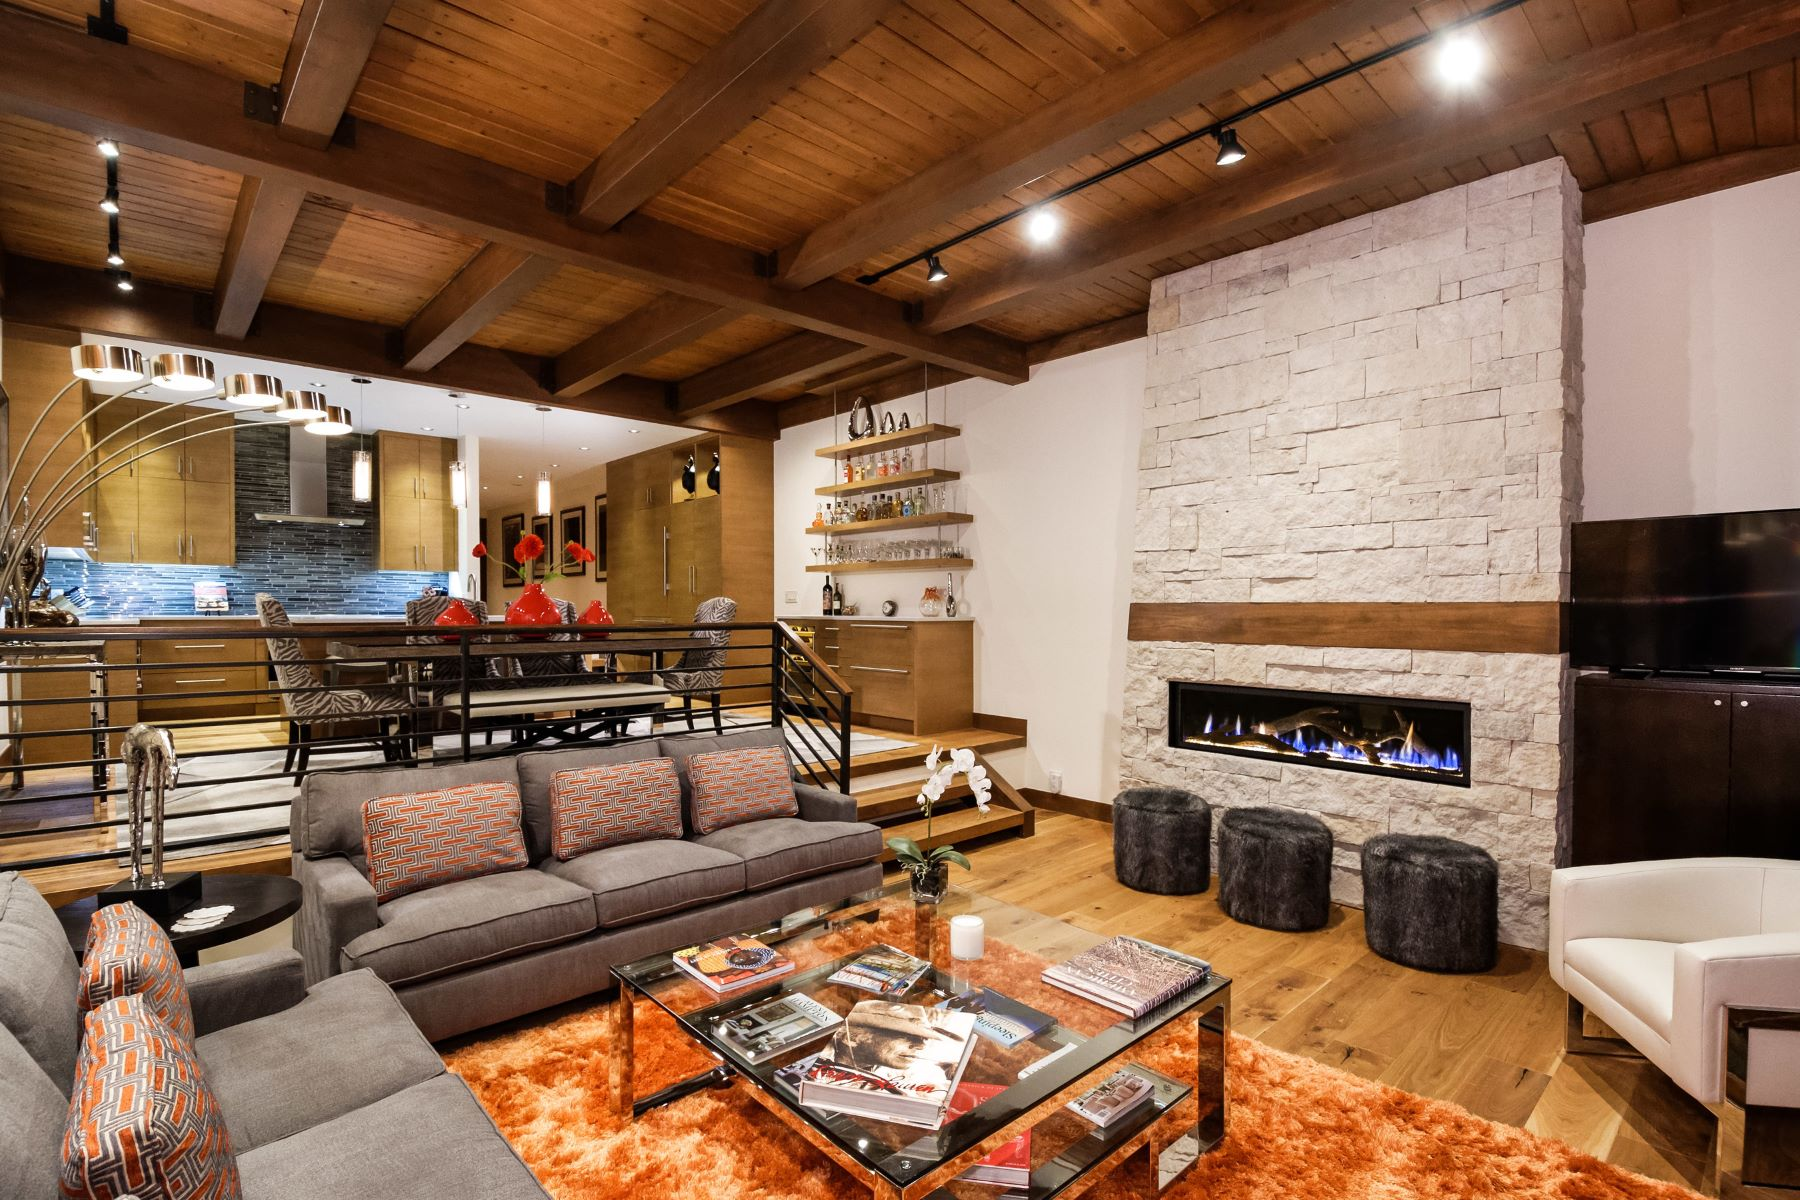 Casa unifamiliar adosada (Townhouse) por un Venta en The Jewel of Snowmass Village 800 Ridge Road, Unit #10, Snowmass Village, Colorado, 81615 Estados Unidos